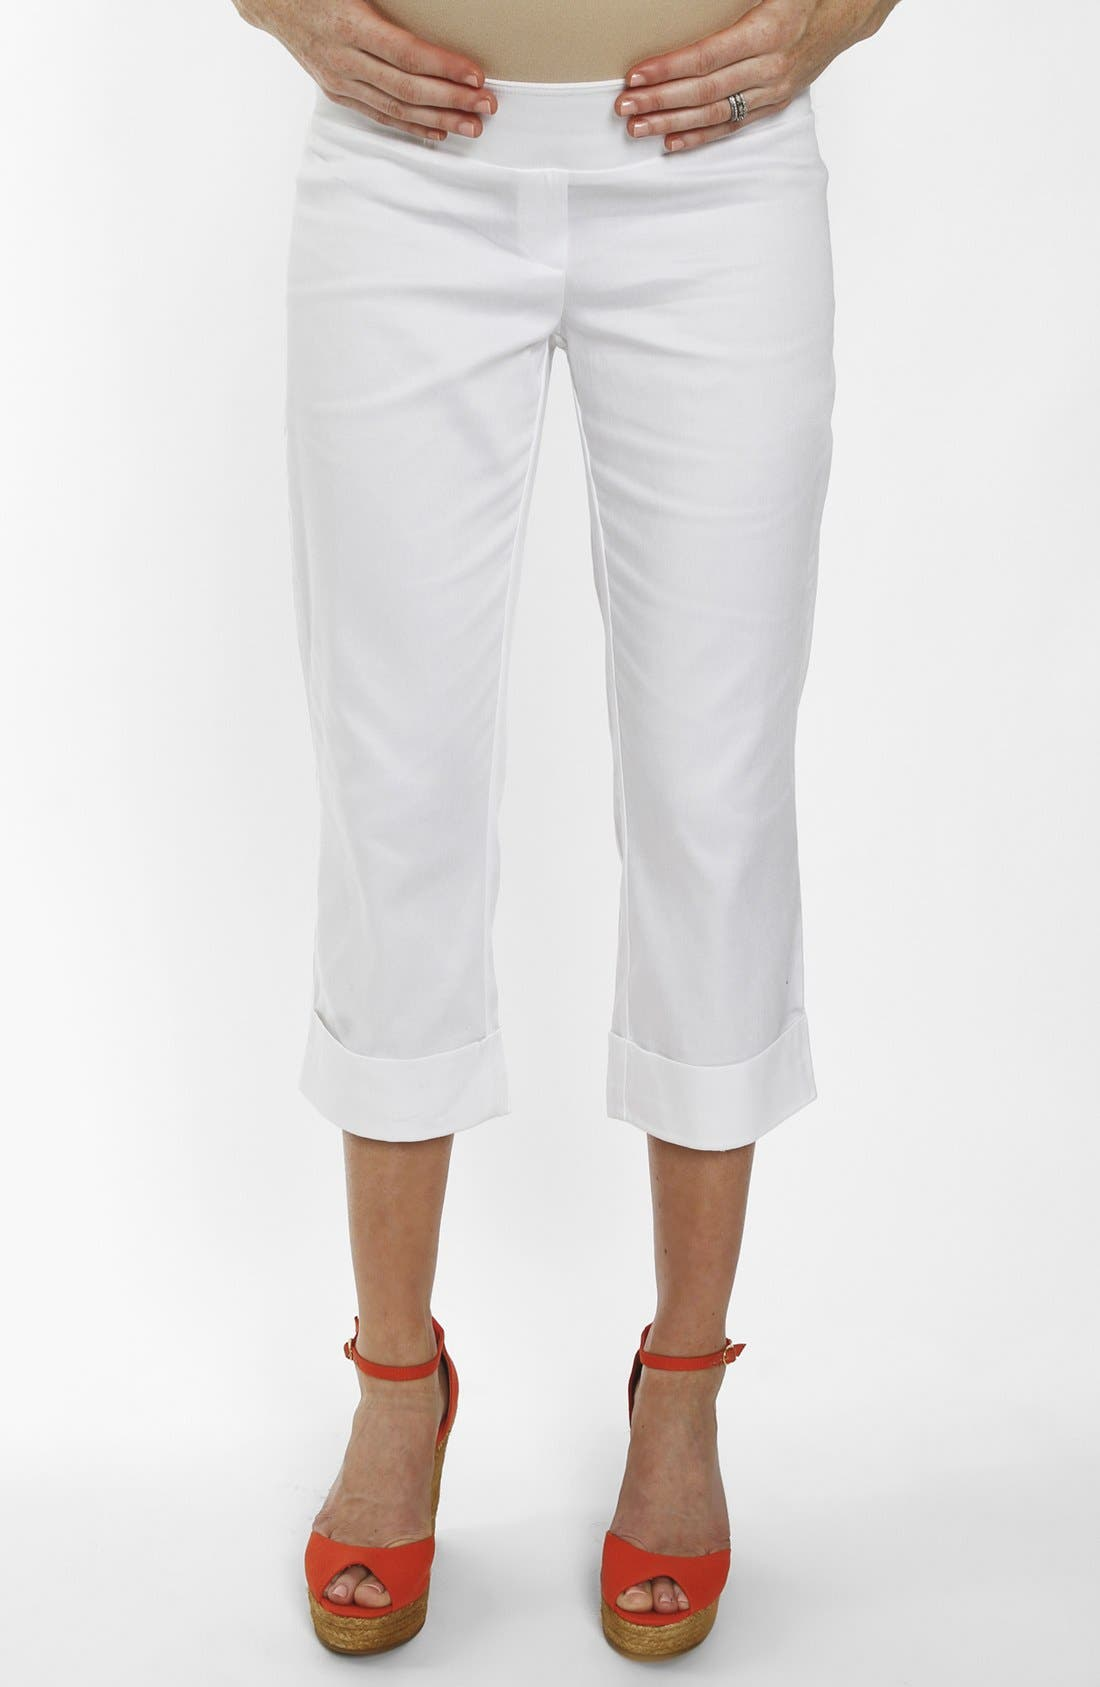 Main Image - Everly Grey 'Carrie' Cropped Maternity Pants